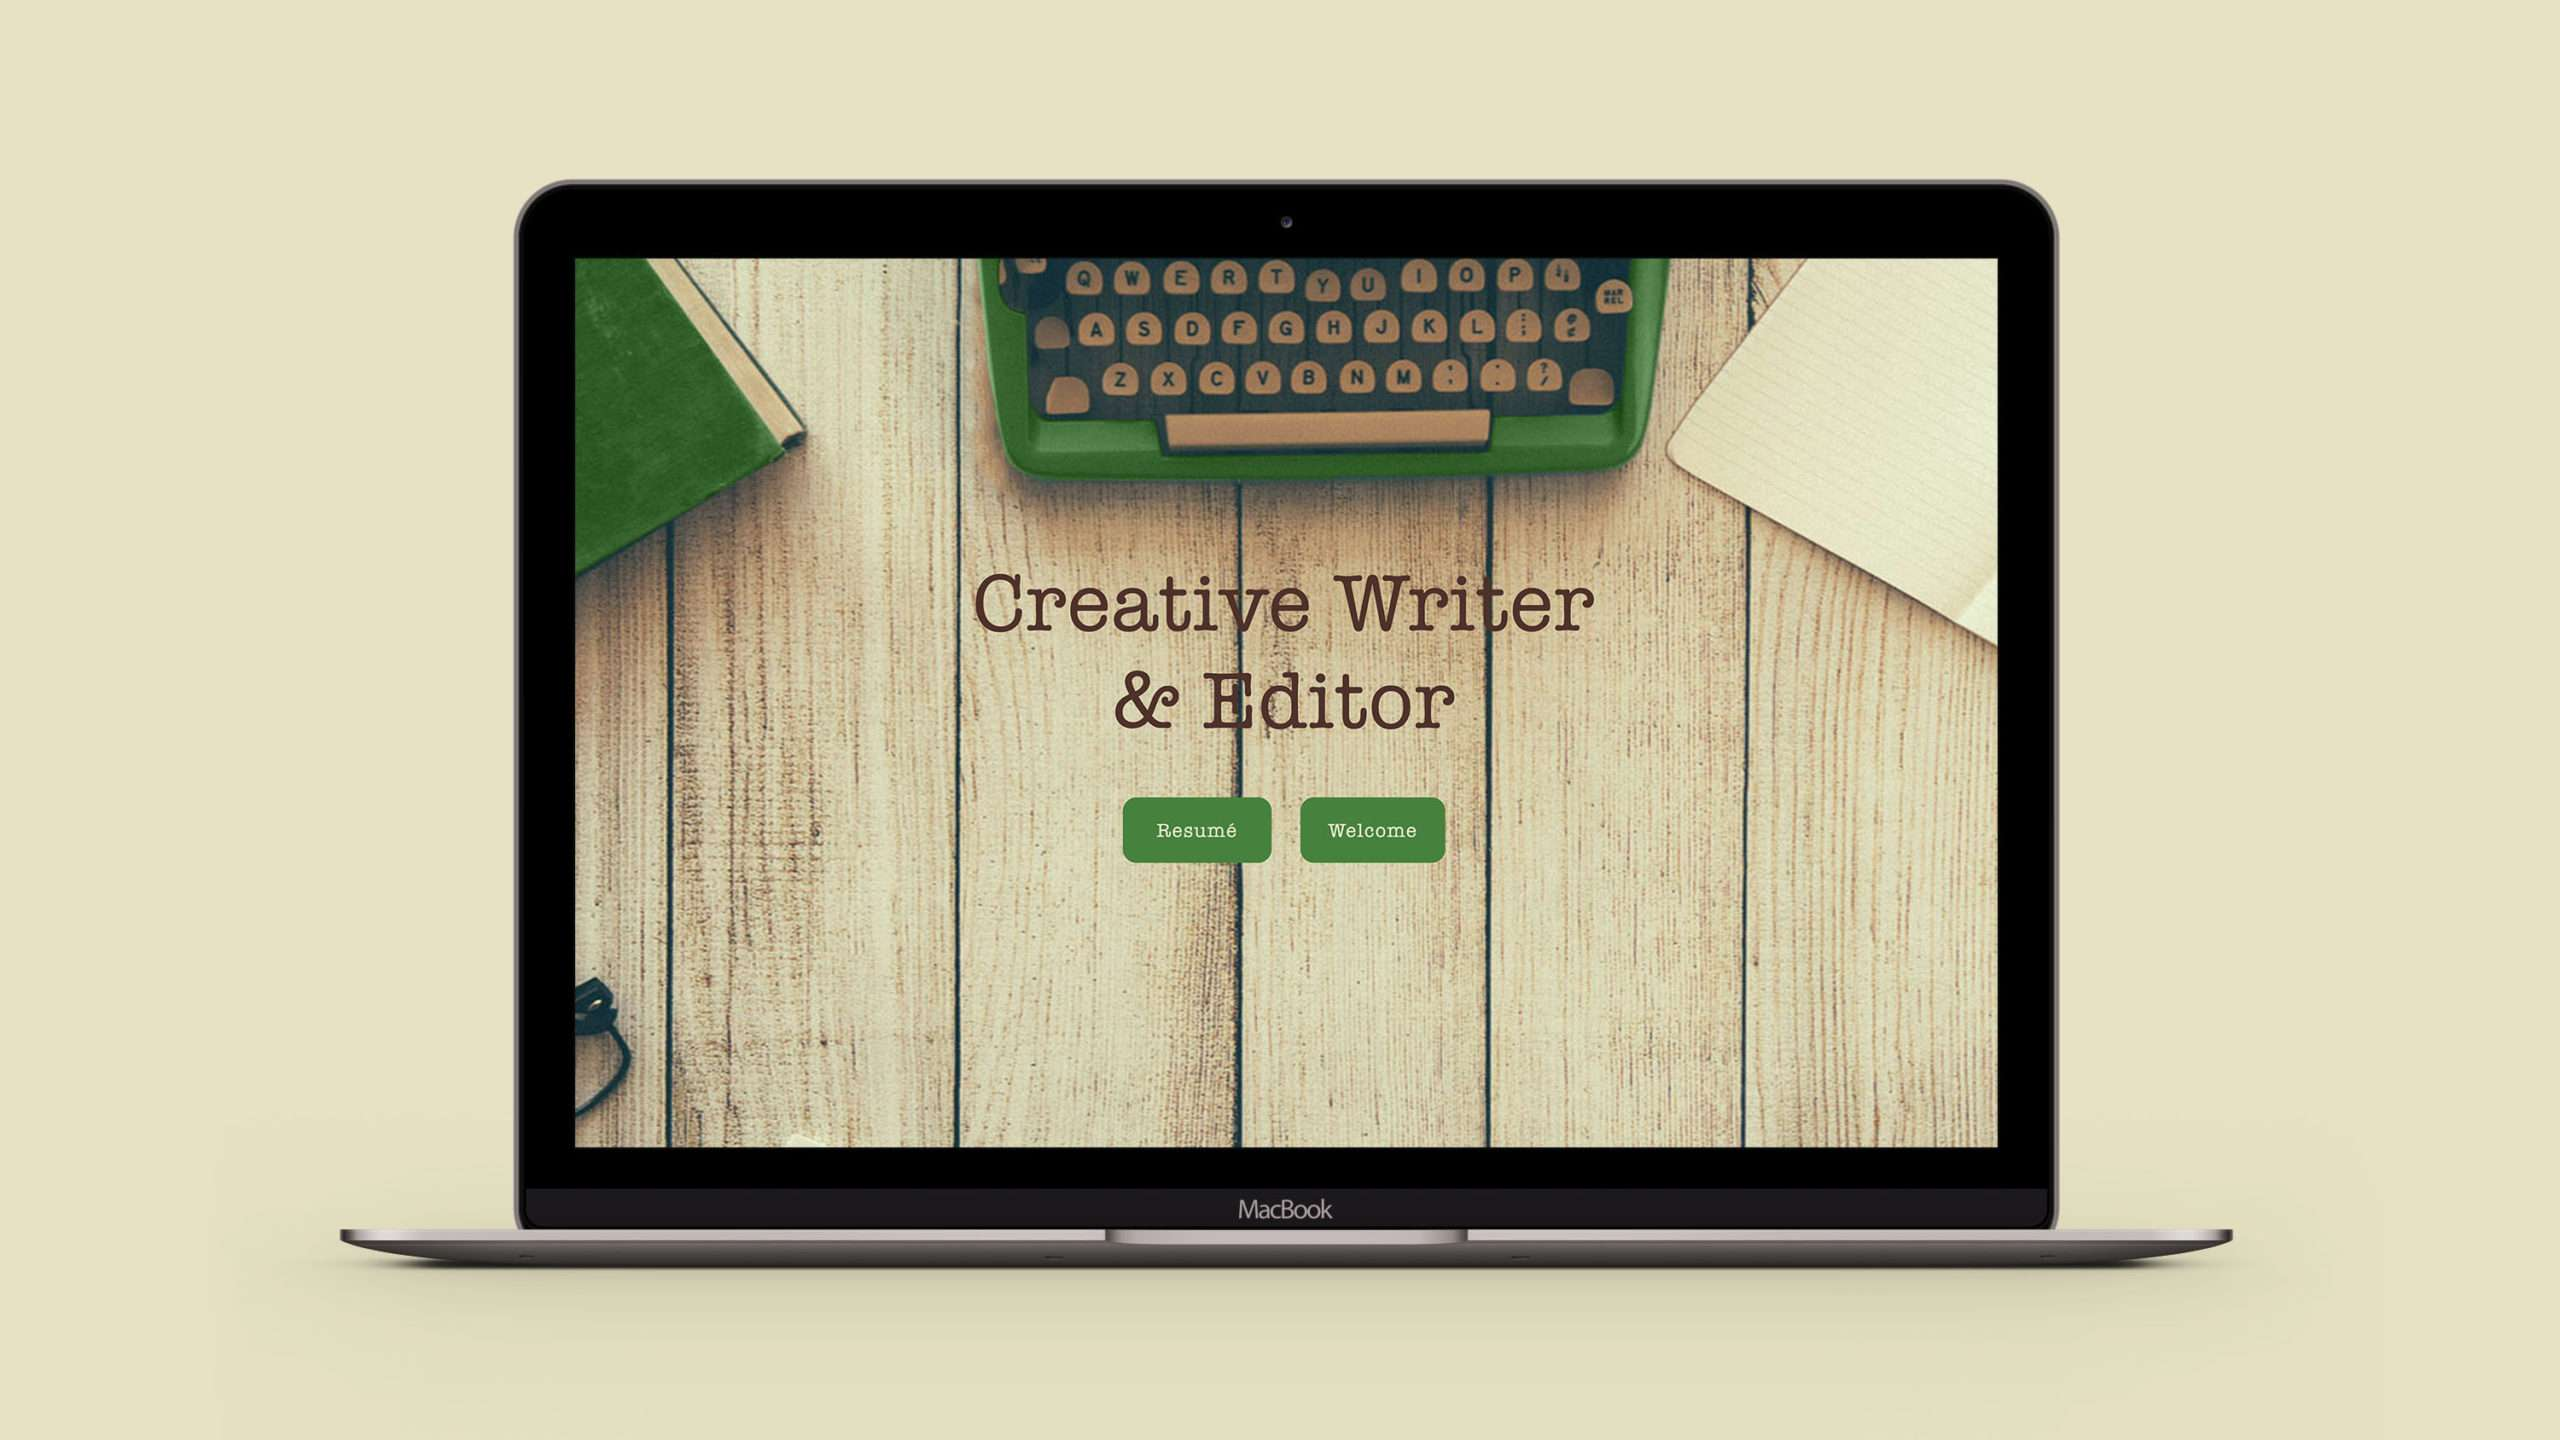 Custom web design for creative writer & editor, using a green typewriter and wood textured background.